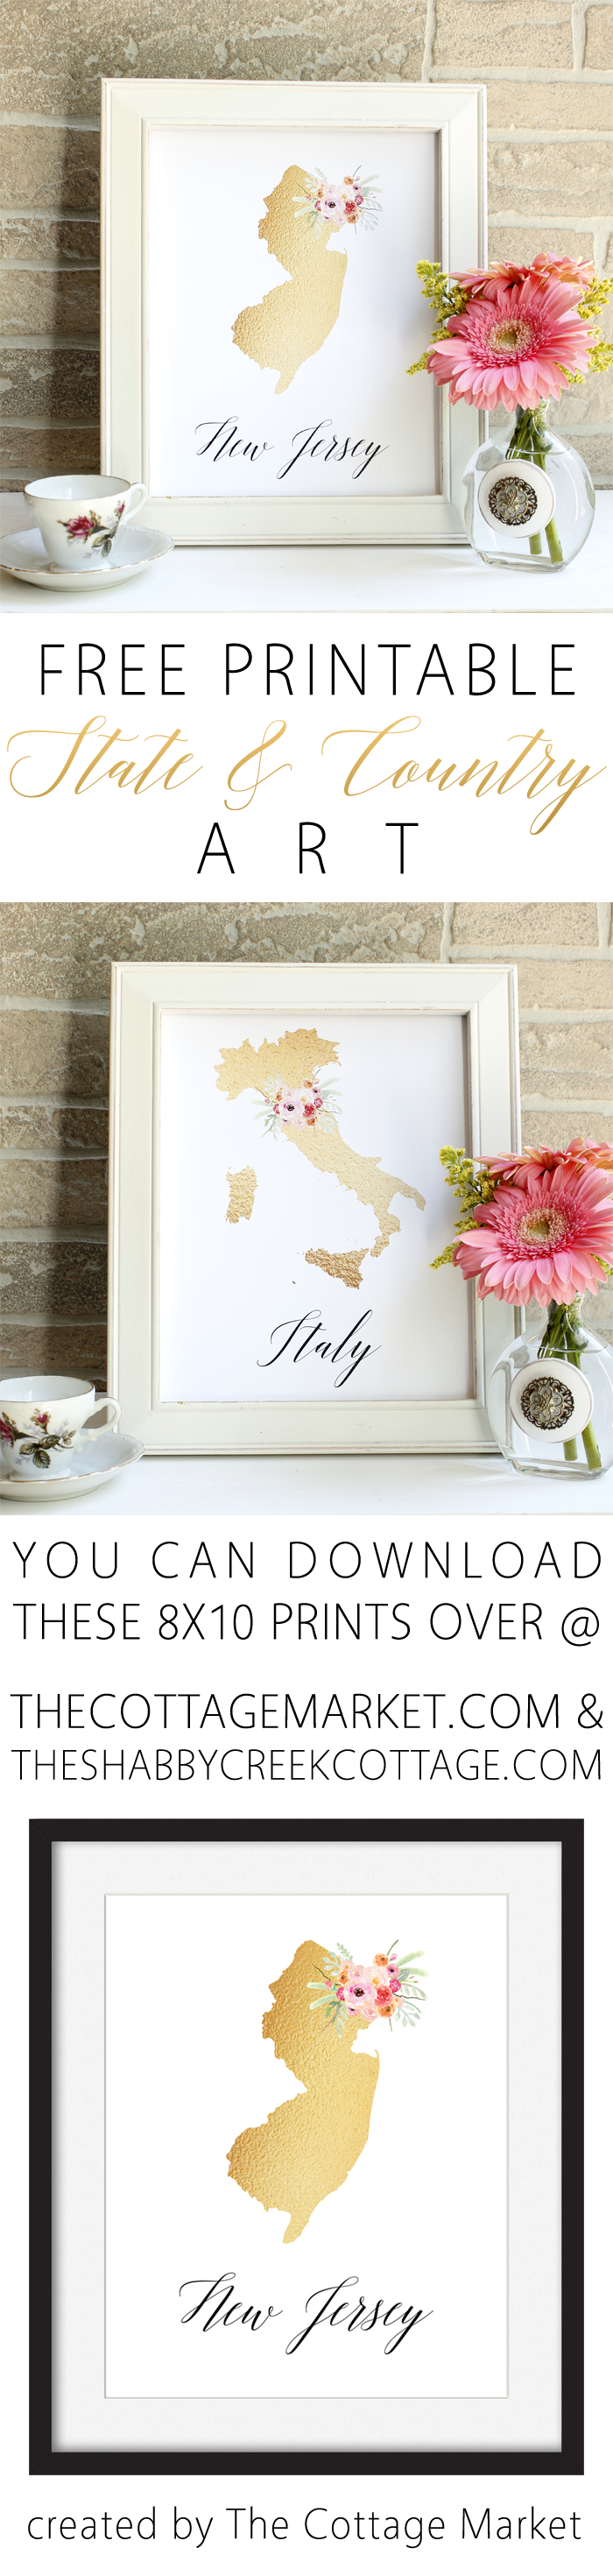 Use these free state and country printables to add a piece of home to your decor.